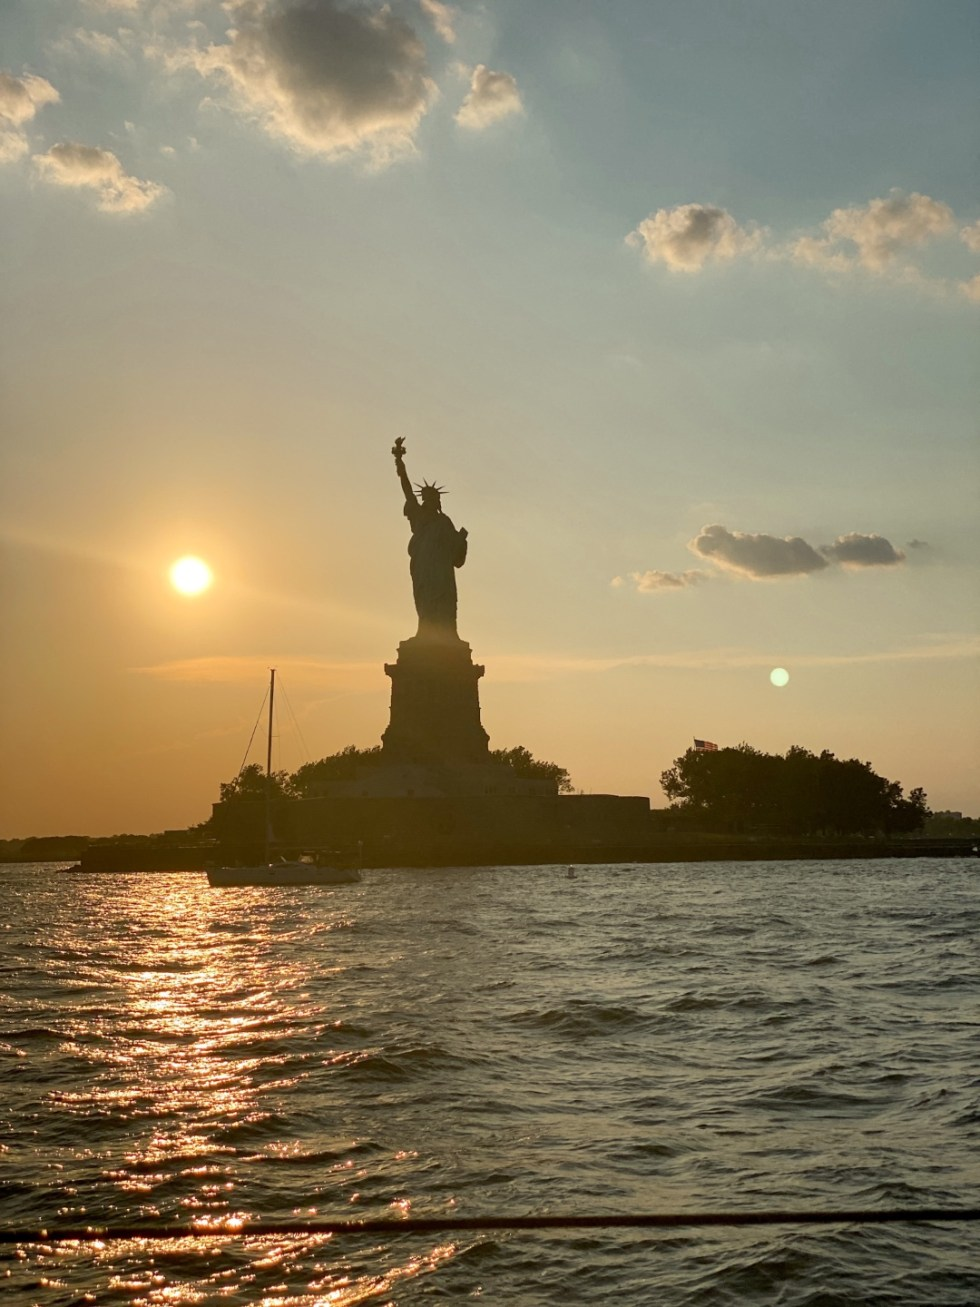 NYC Summer Weekend: Things to Do in NYC in the Summer - I'm Fixin' To - @imfixintoblog   NYC Summer Weekend by popular NC travel blog, I'm Fixin' To: image of the Statue of Liberty.